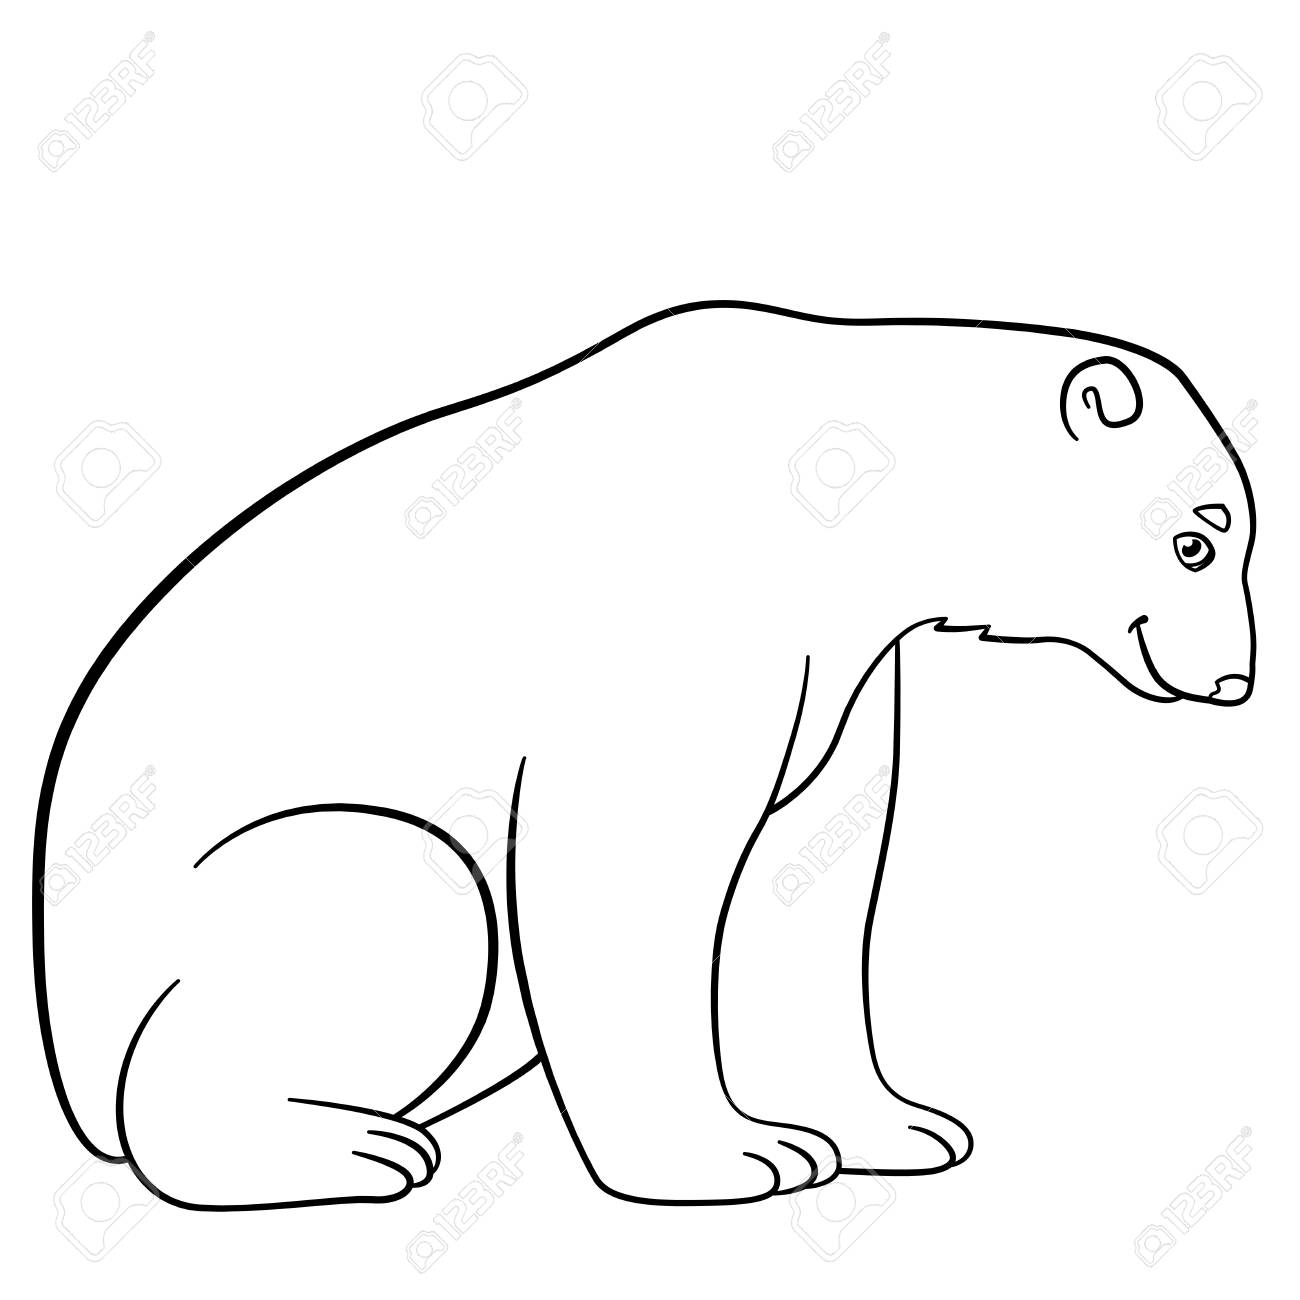 - Coloring Pages. Cute Polar Bear Sits And Smiles. Royalty Free